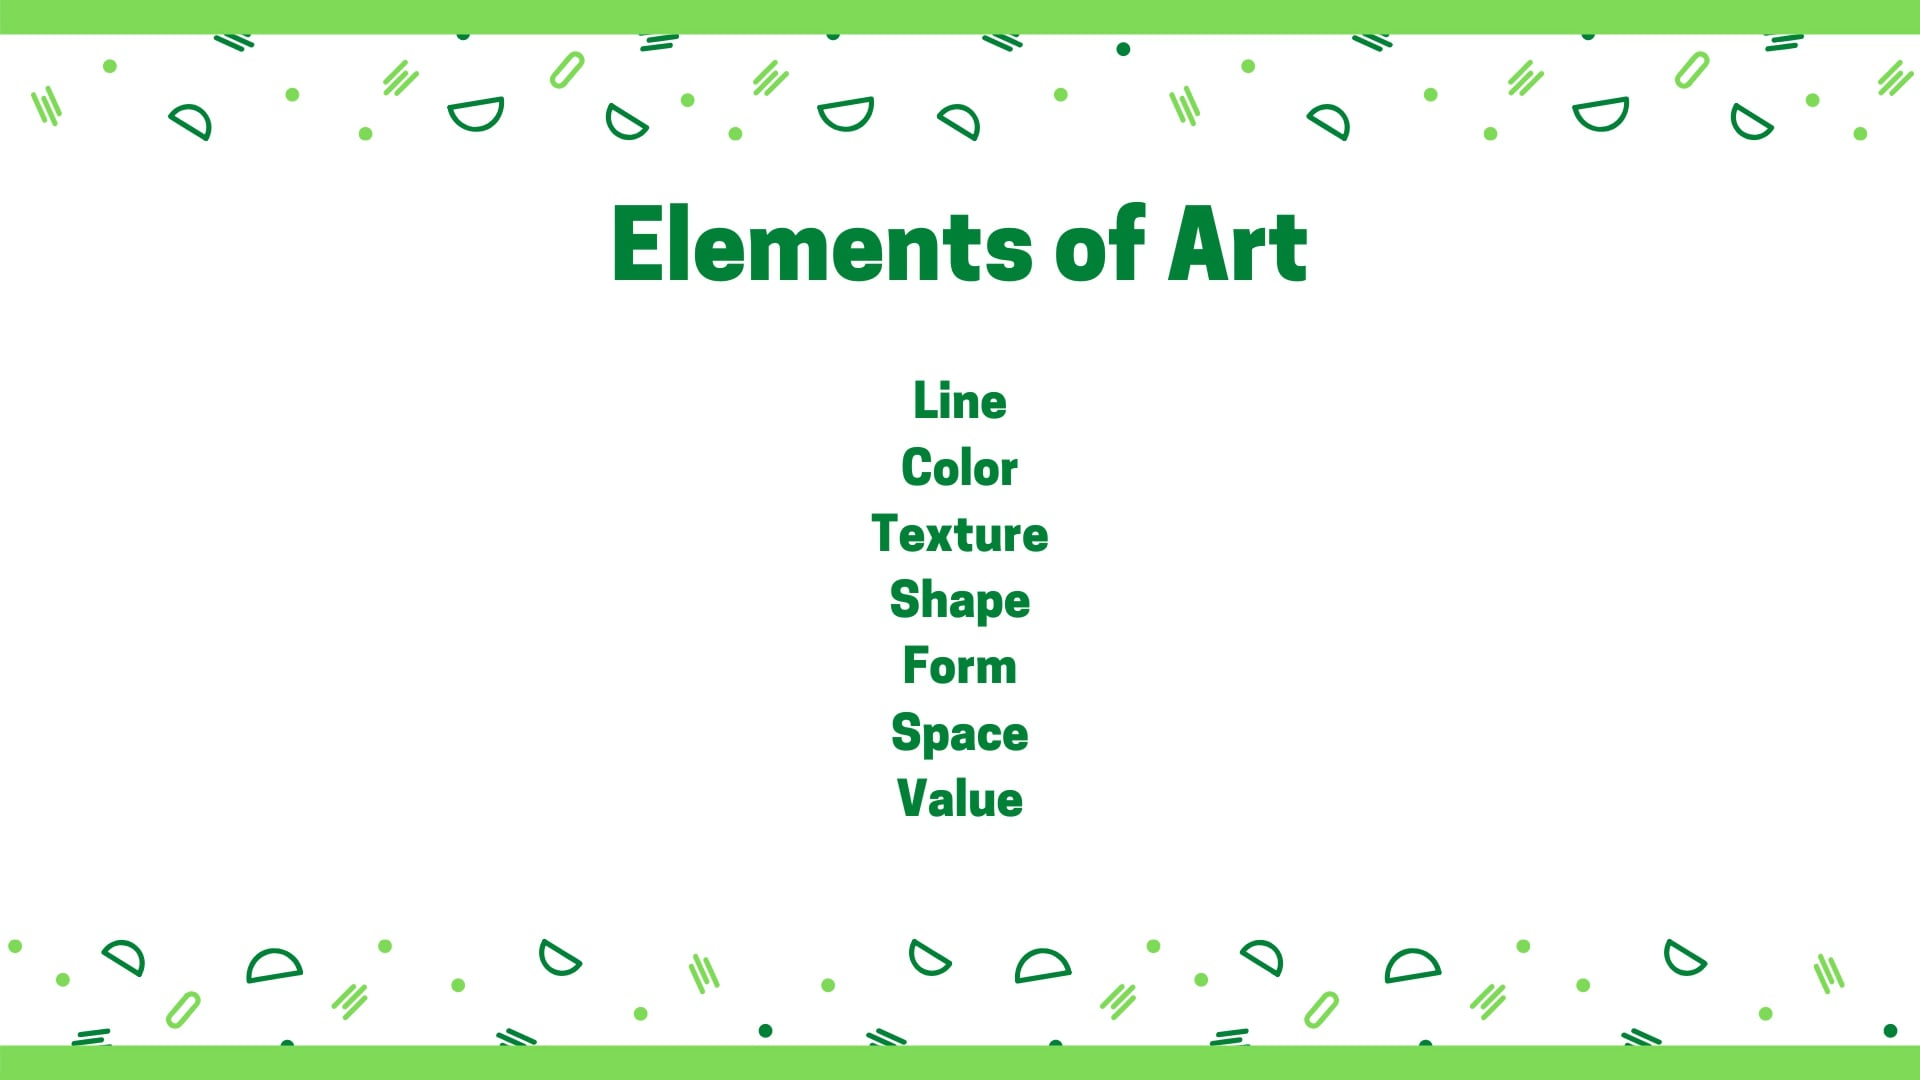 New Digital Ideas: Elements of Art